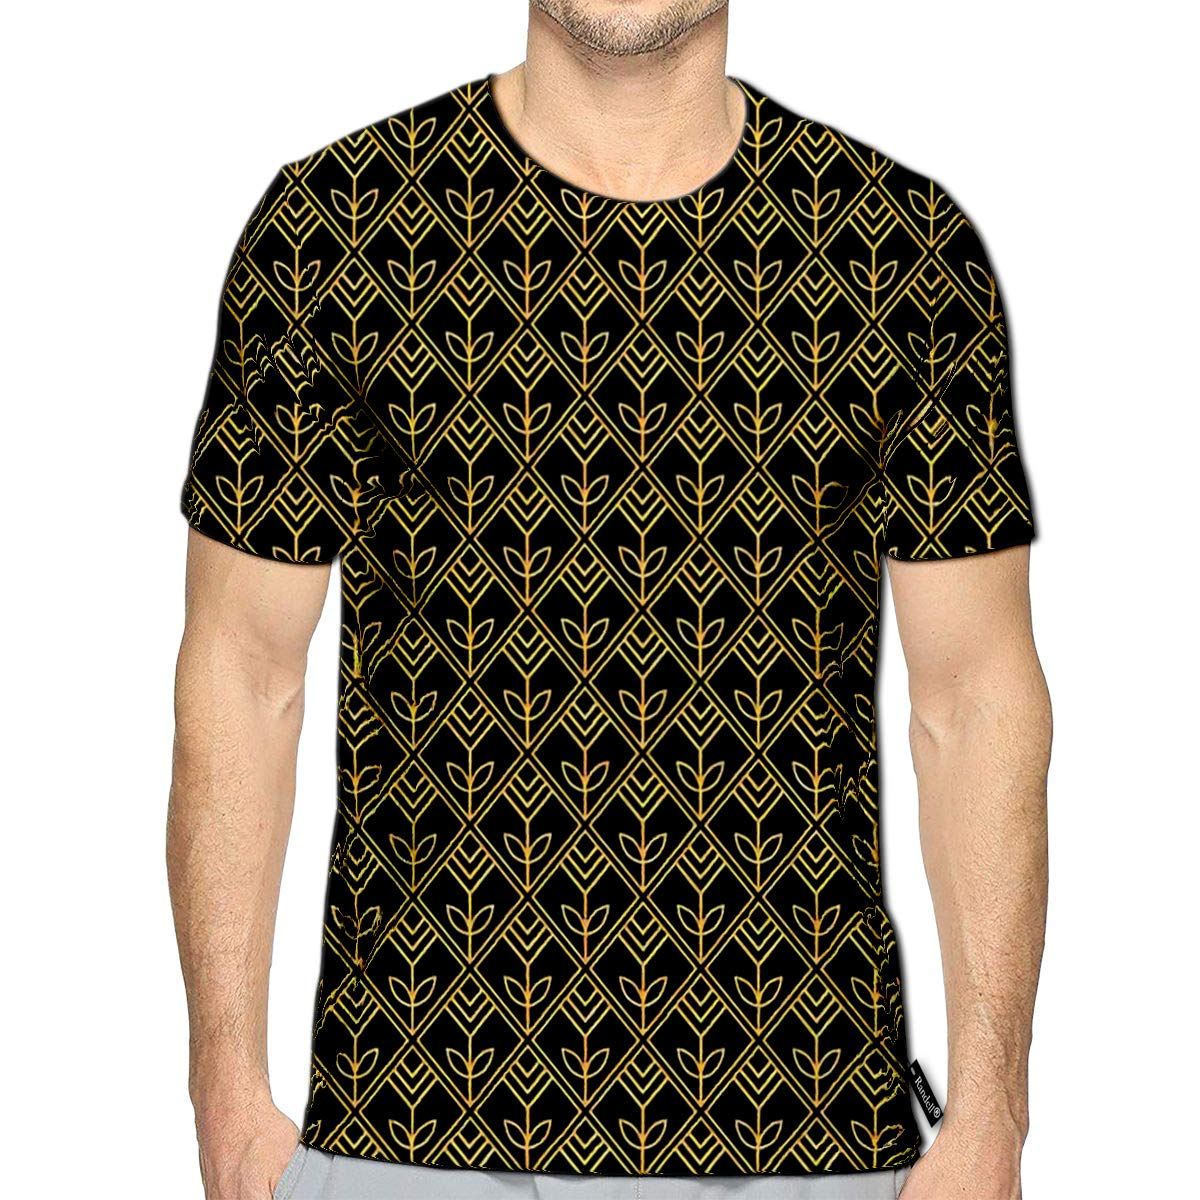 3D Printed T-Shirts Cute Retro Atomic 1950S Mid Century Vintage Short Sleeve Top